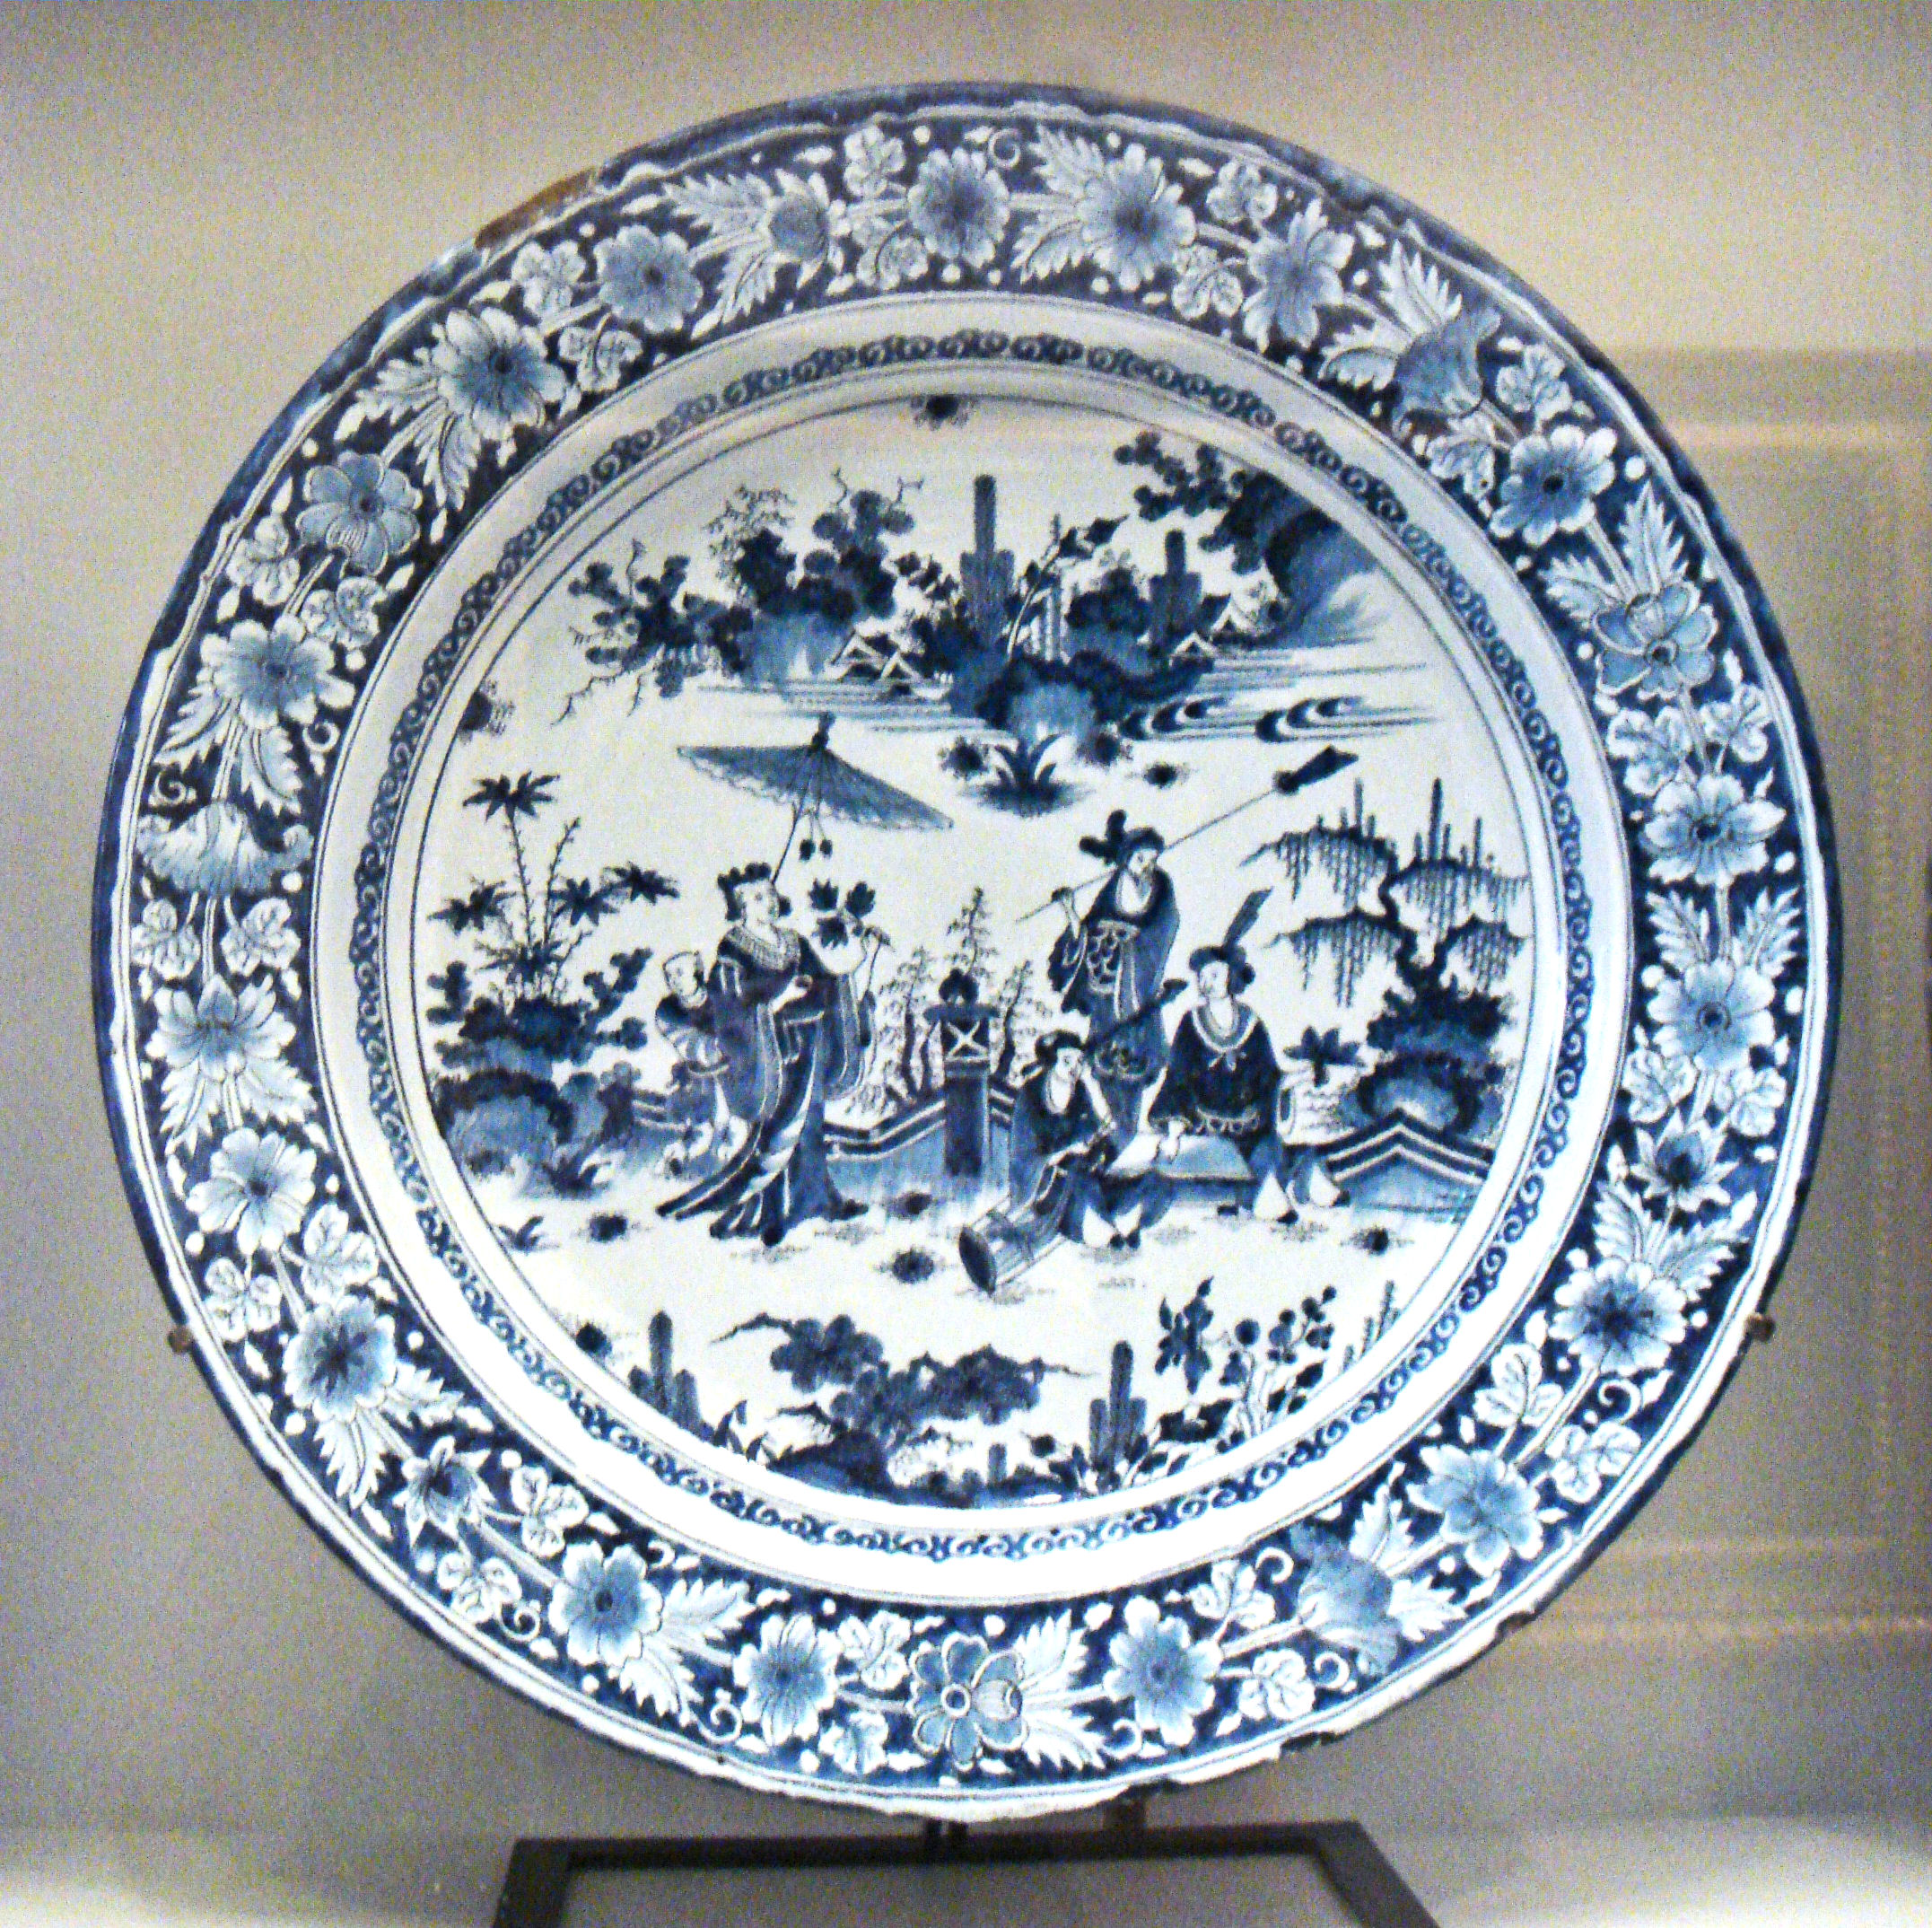 An early 20th Century Cantagalli pottery dish in 16th Century Gubbio style painted in enamels a | Pinterest | Dishes 16th century and Enamels & An early 20th Century Cantagalli pottery dish in 16th Century ...